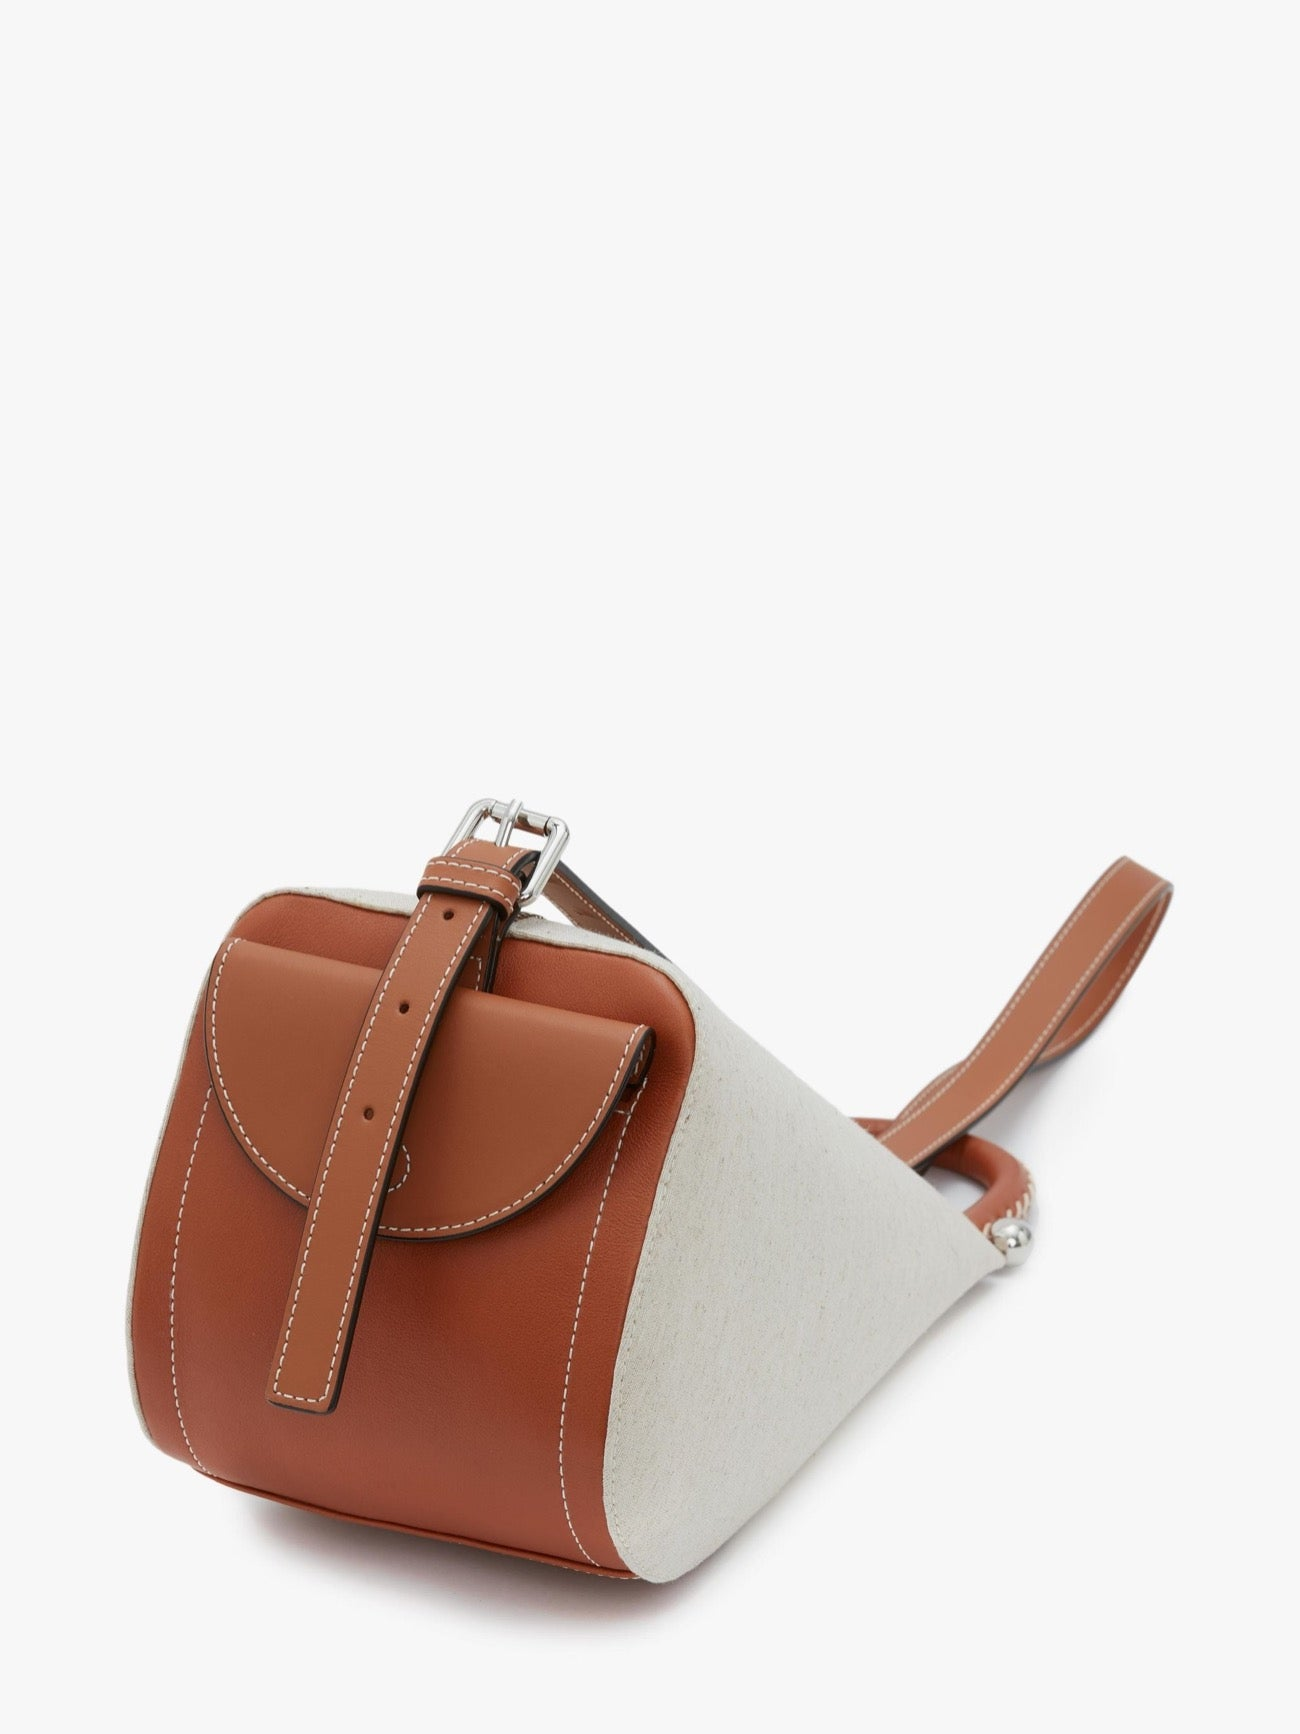 SMALL WEDGE BAG